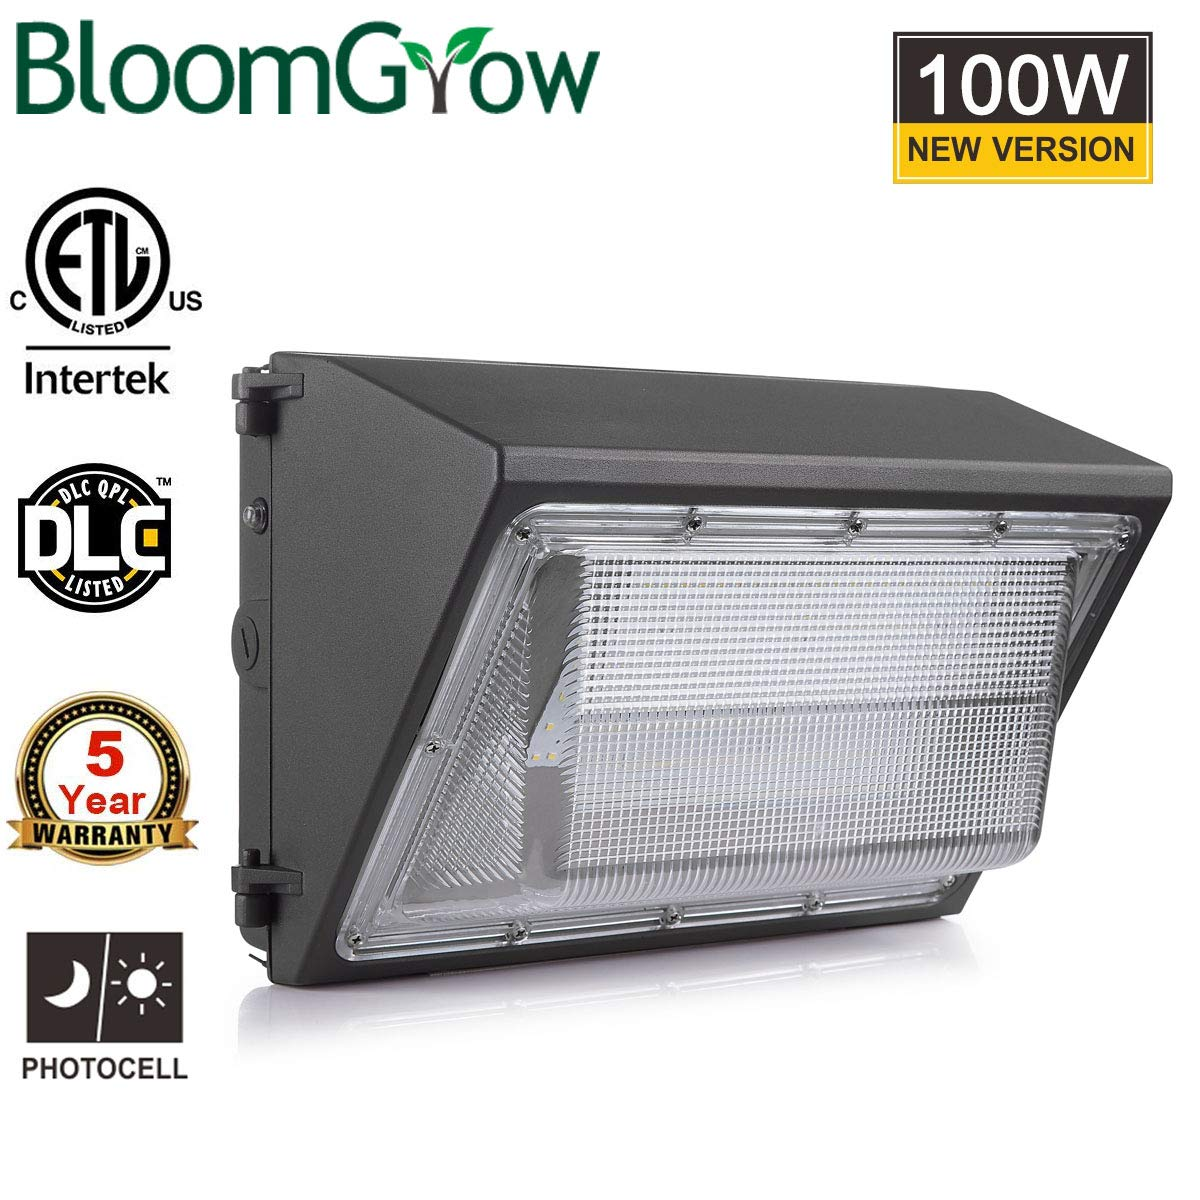 100W BloomGrow 100W Wall Pack LED Wall Lights 120V~277V 5000K Commercial Outdoor Light Fixture Commercial and Industrial Outdoor Lighting IP65 Waterproof